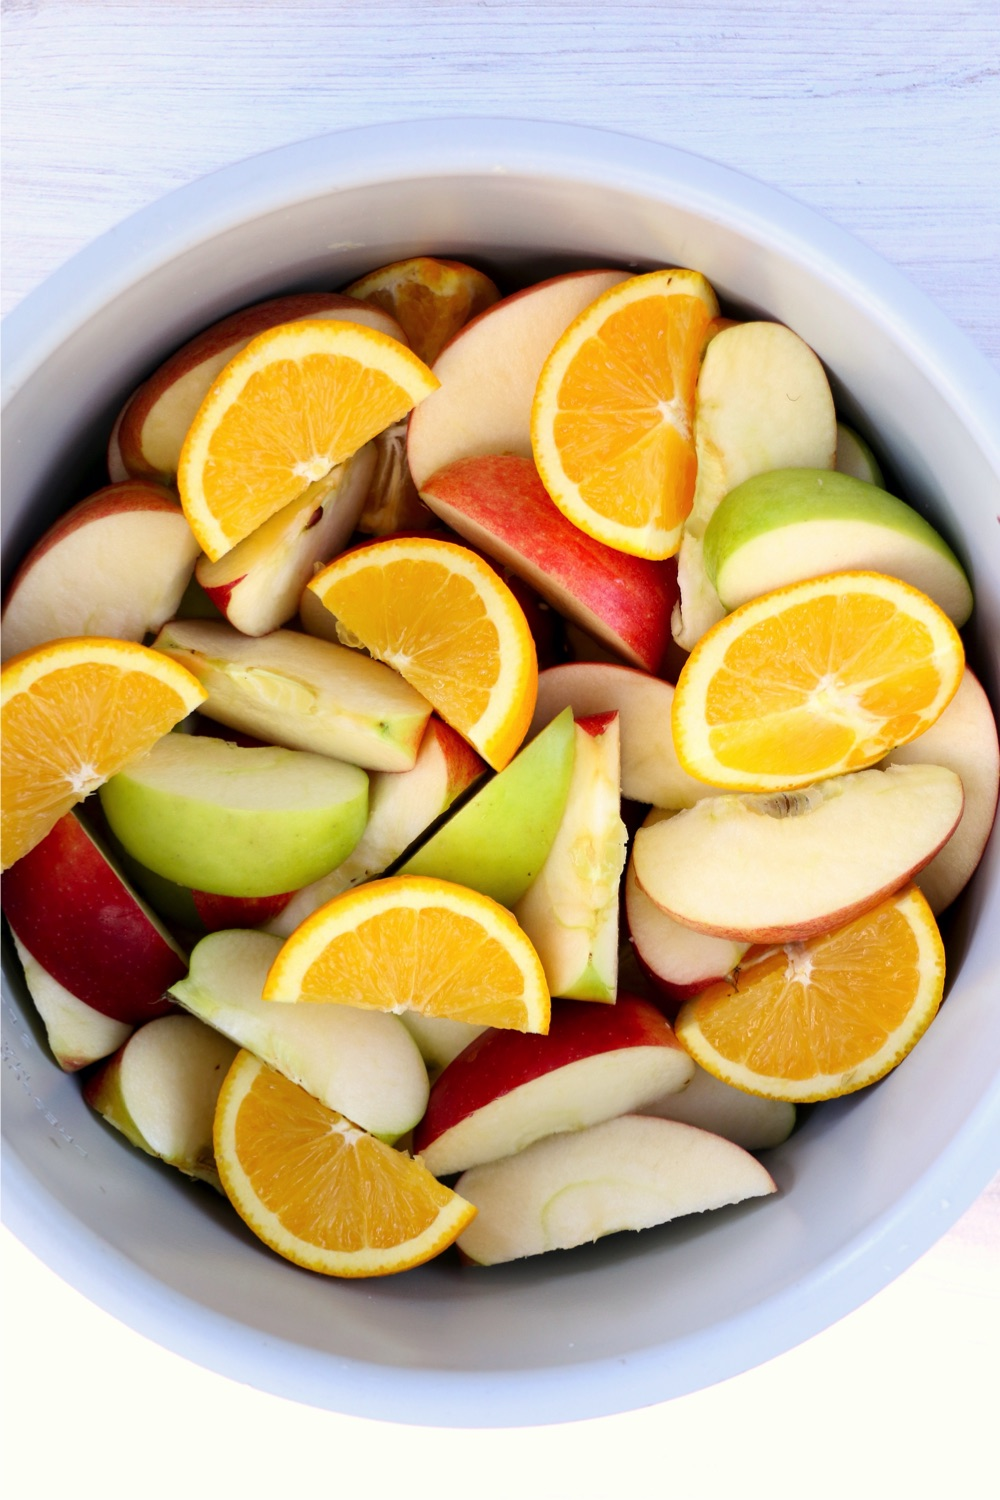 Ninja Foodi pot filled with sliced apples and oranges